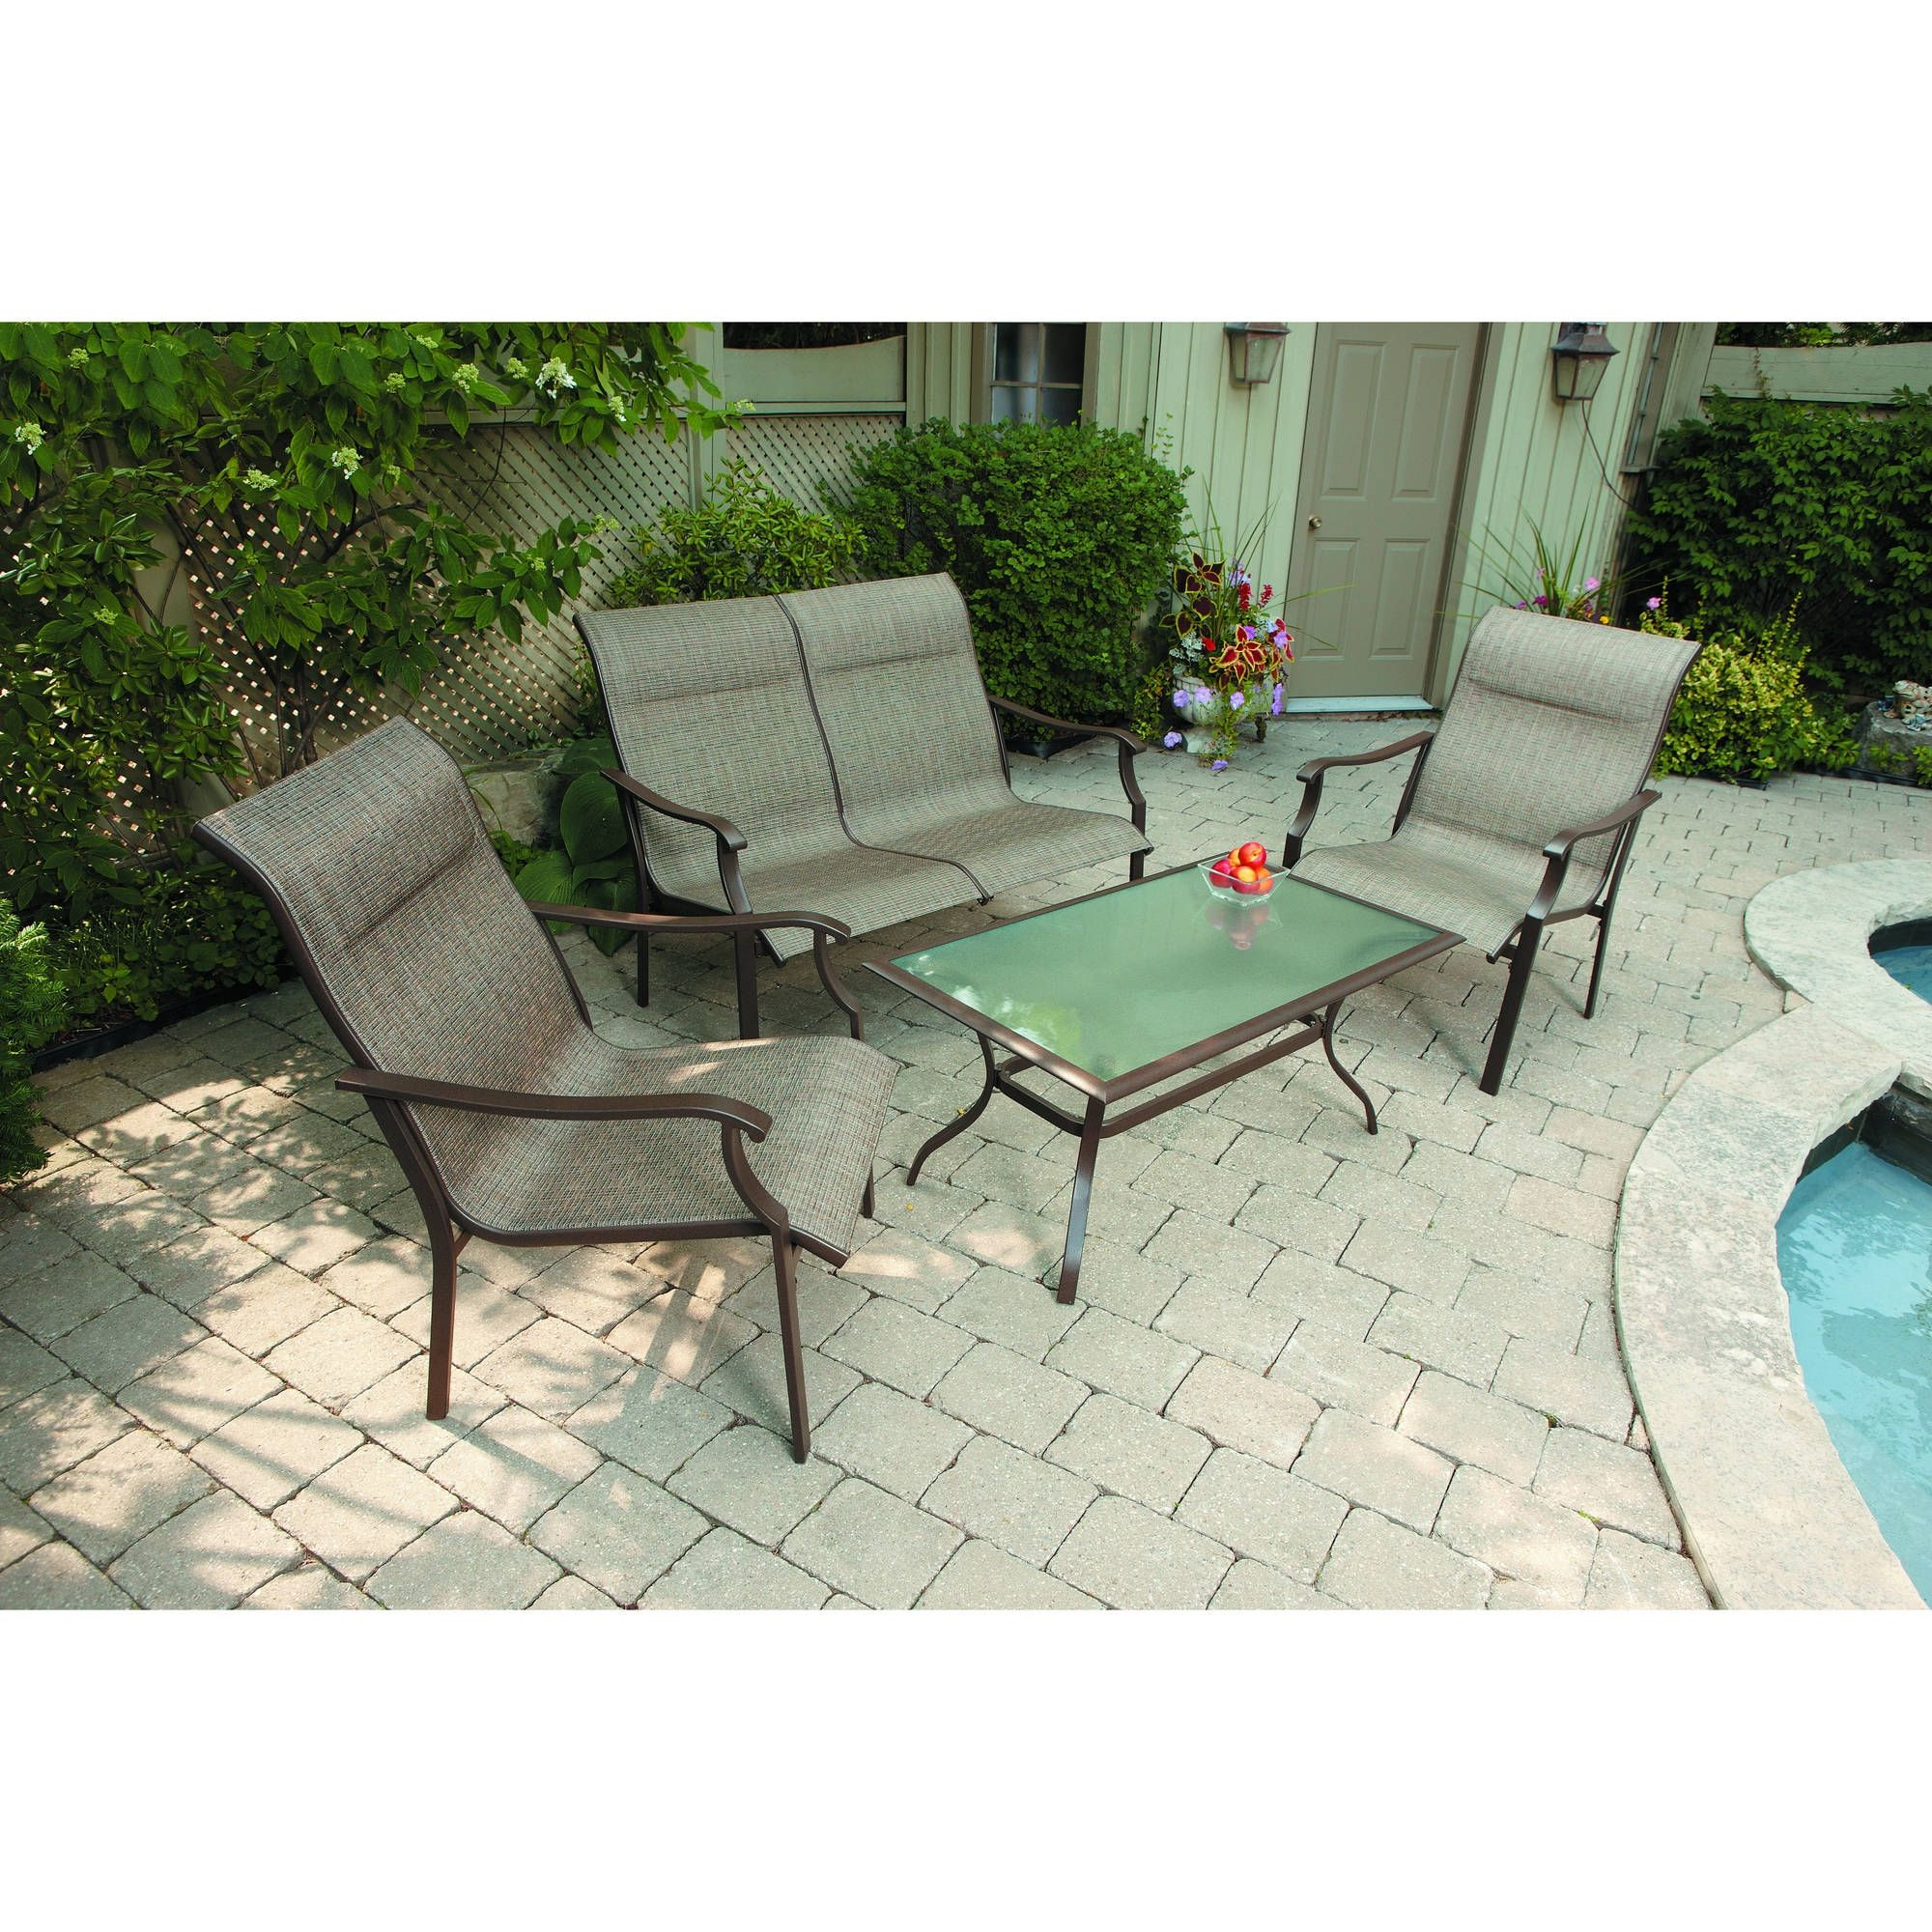 Sandhill Outdoor Sofa Sectional Set